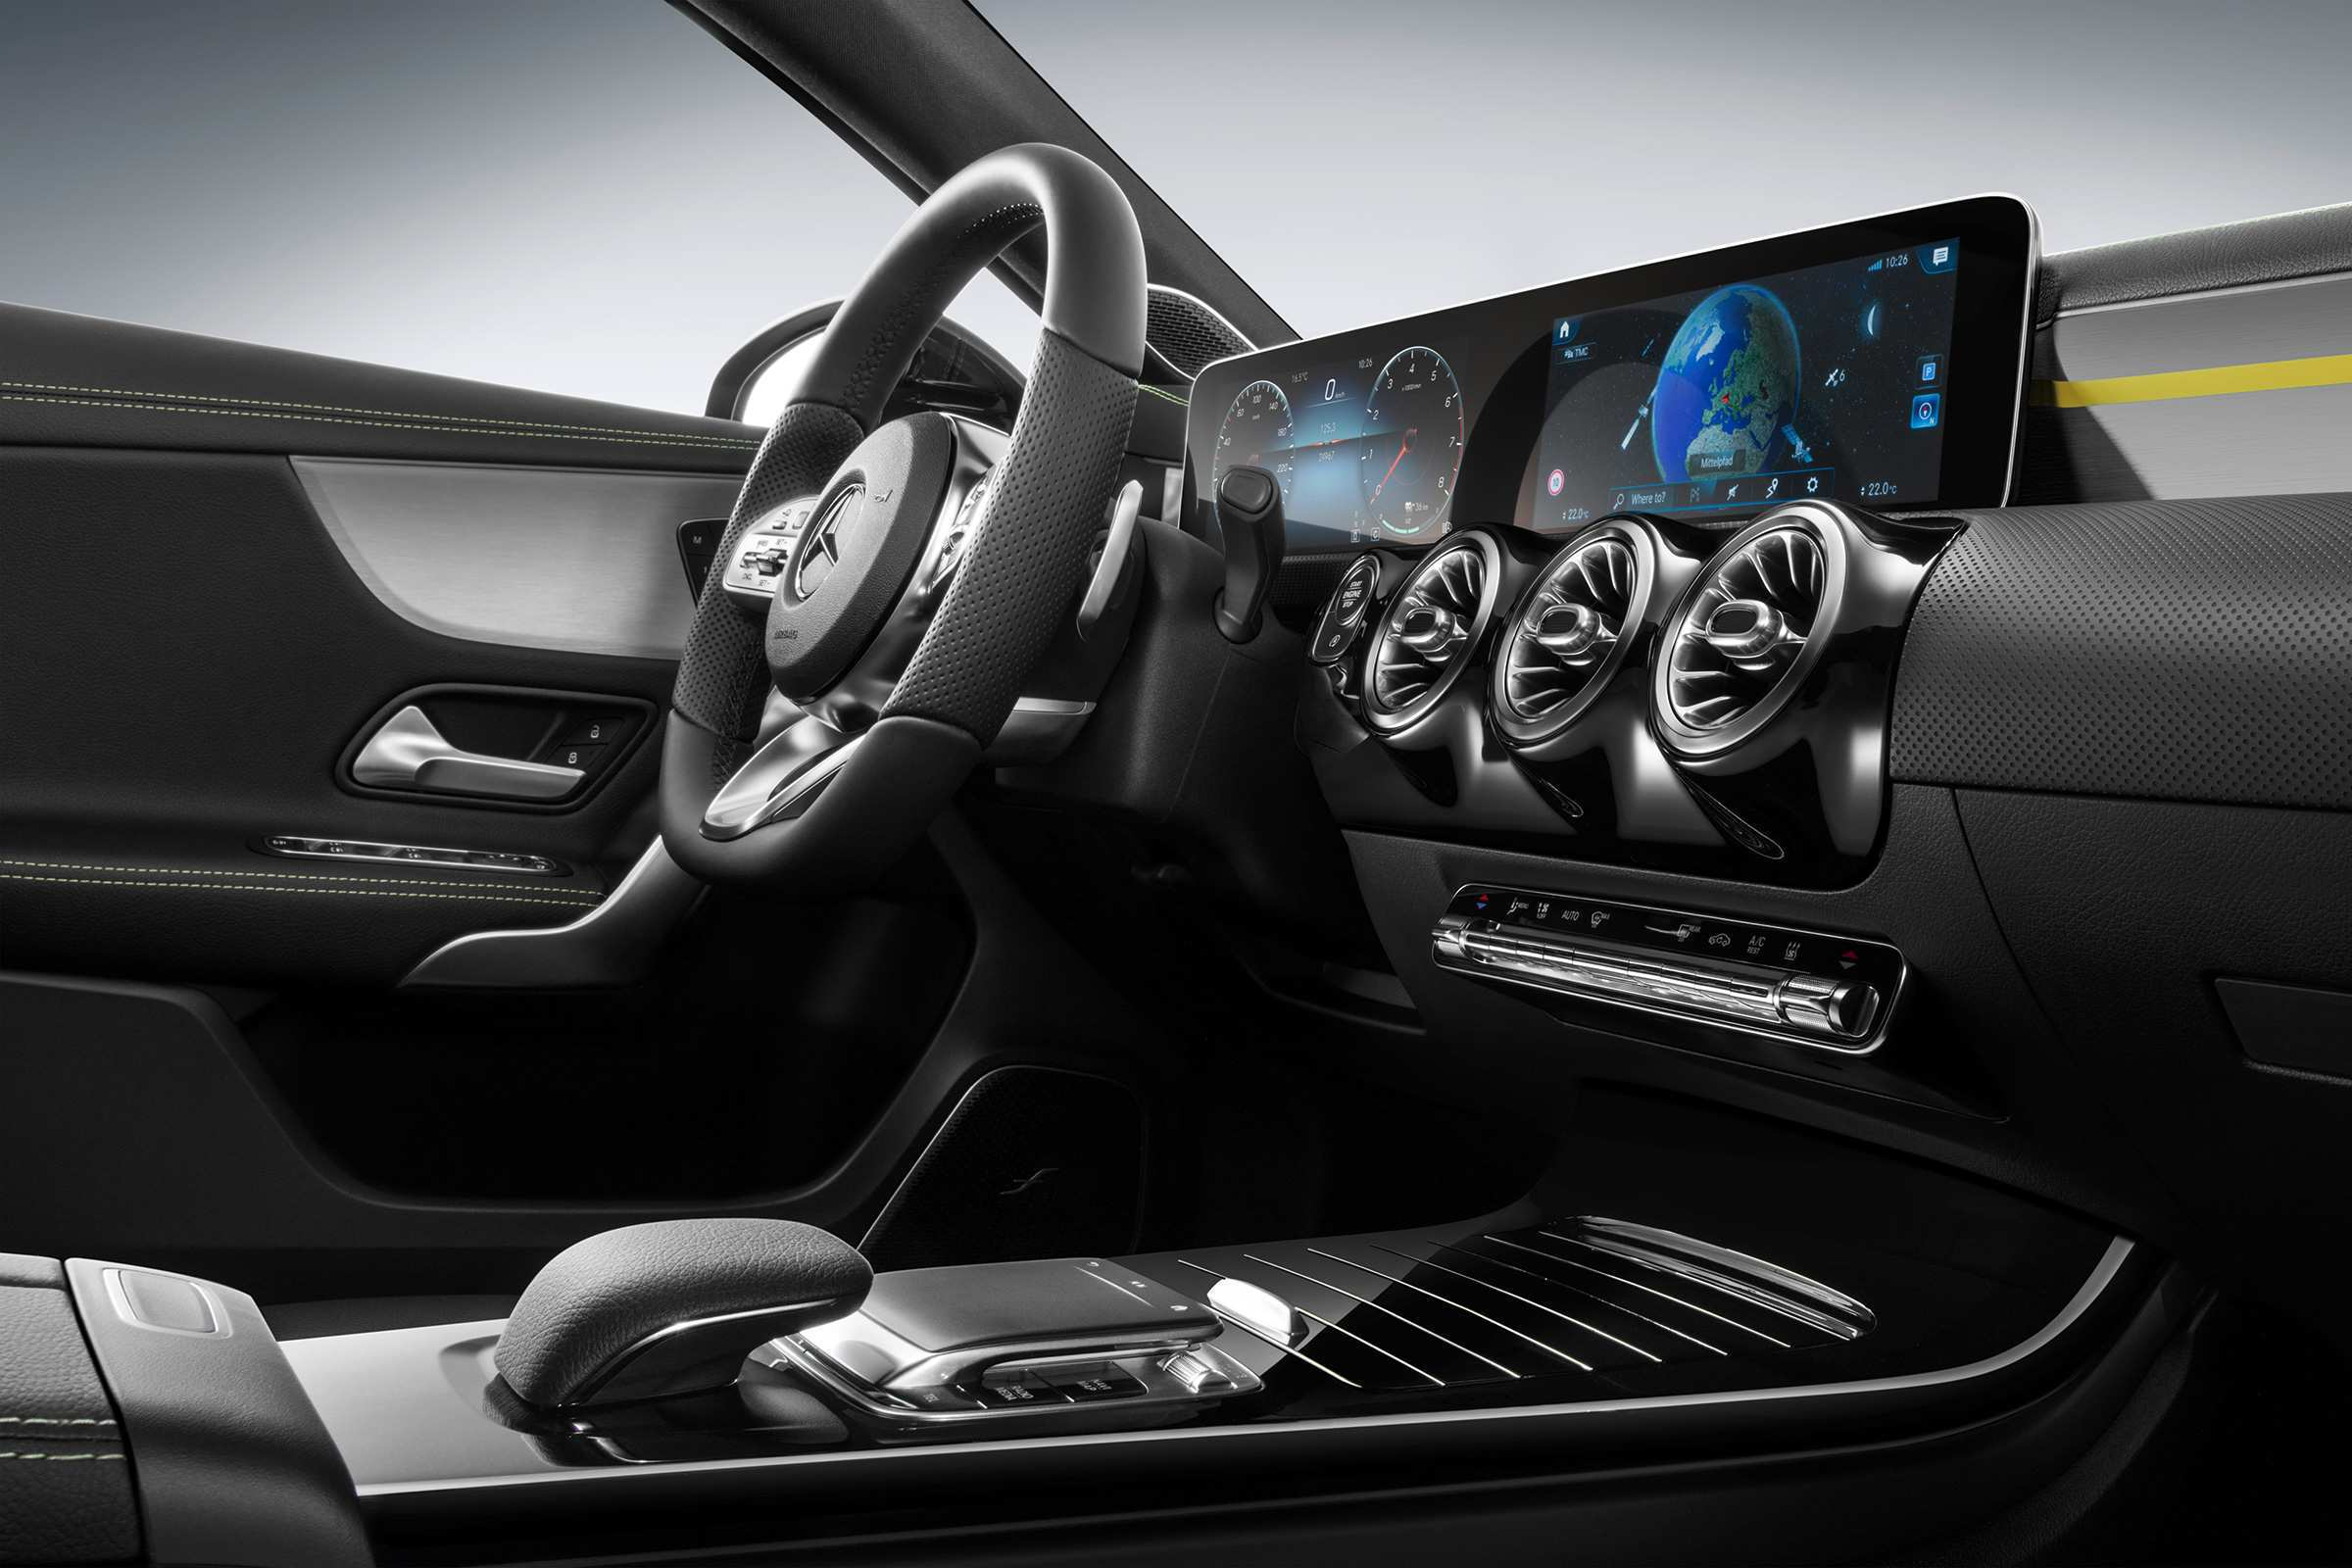 74 Concept of Mercedes A Class 2019 Interior Performance and New Engine with Mercedes A Class 2019 Interior